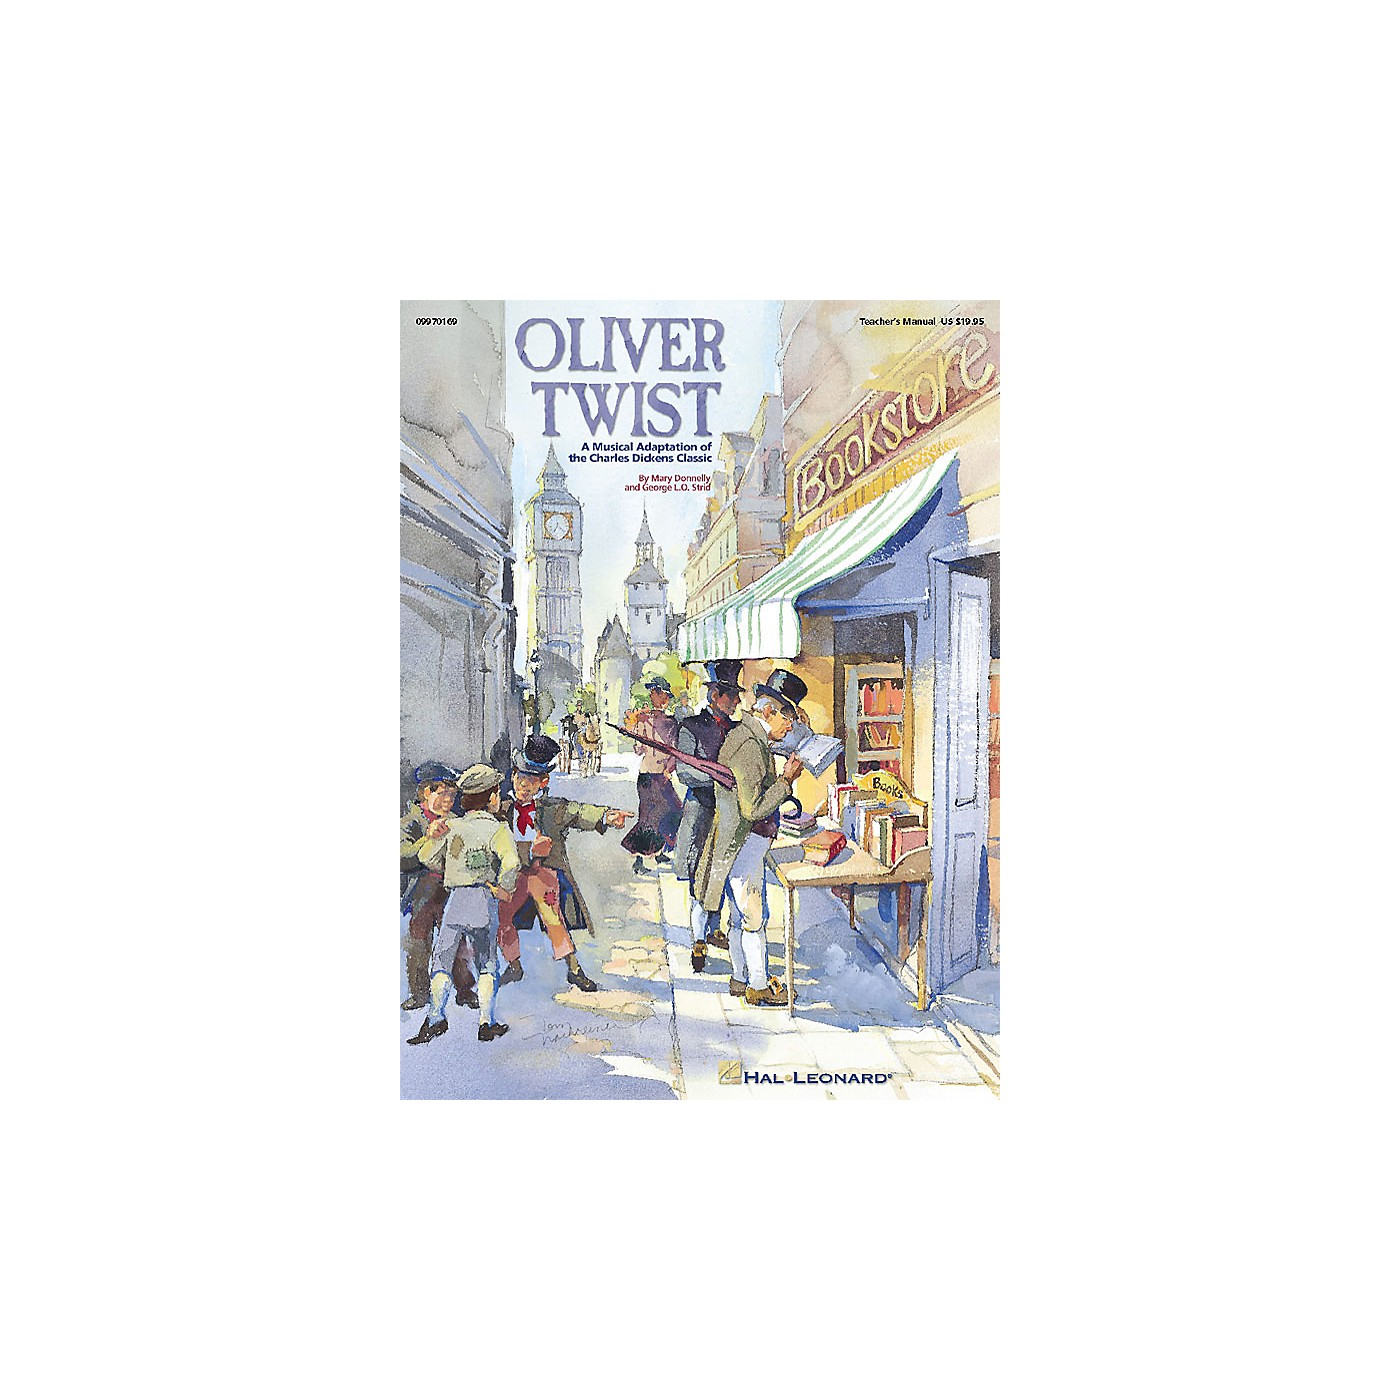 Hal Leonard Oliver Twist - A Musical Adaptation of the Charles Dickens Classic (Musical) ShowTrax CD by Billingsley thumbnail